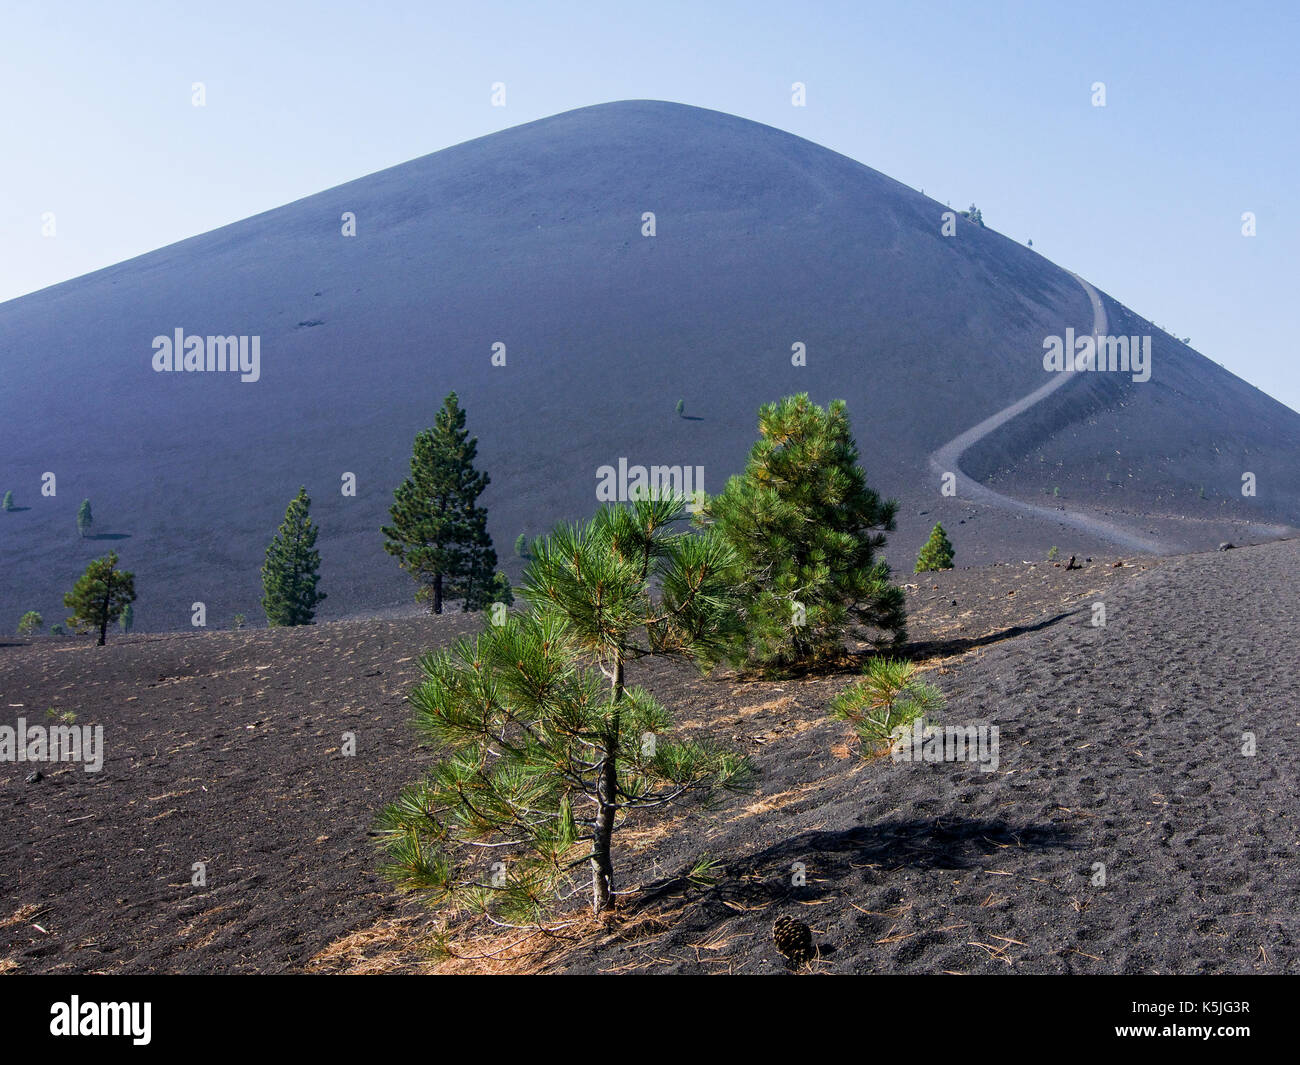 Cinder Cone trail, Lassen Volcanic National Park, on a smoky day, featuring the lava bed, the bare, rugged terrain and a few pine trees - Stock Image